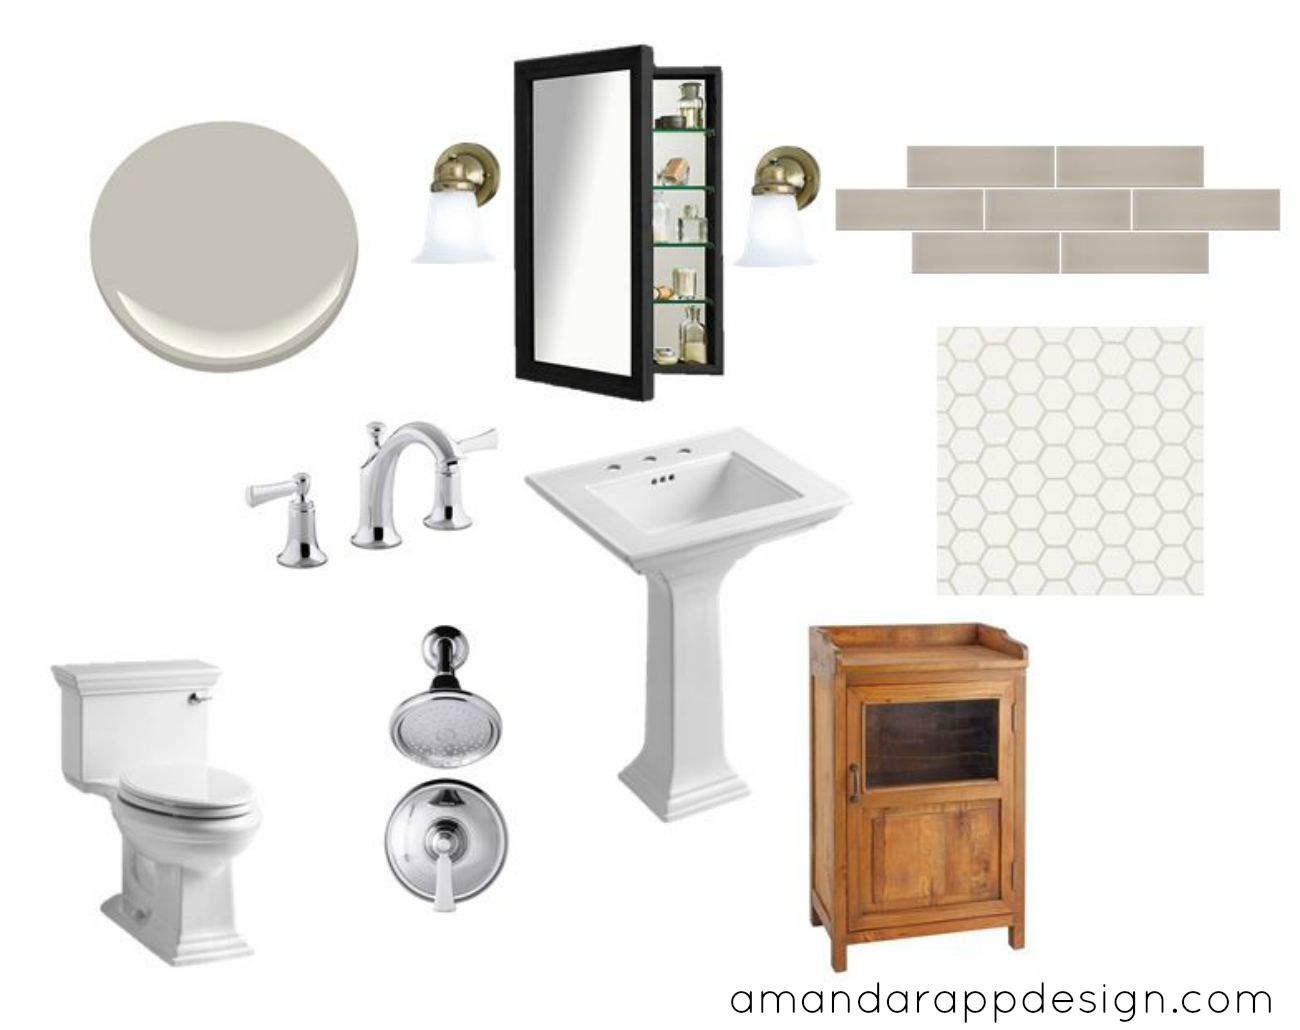 Bathroom Design Board amanda rapp design: bathroom design board